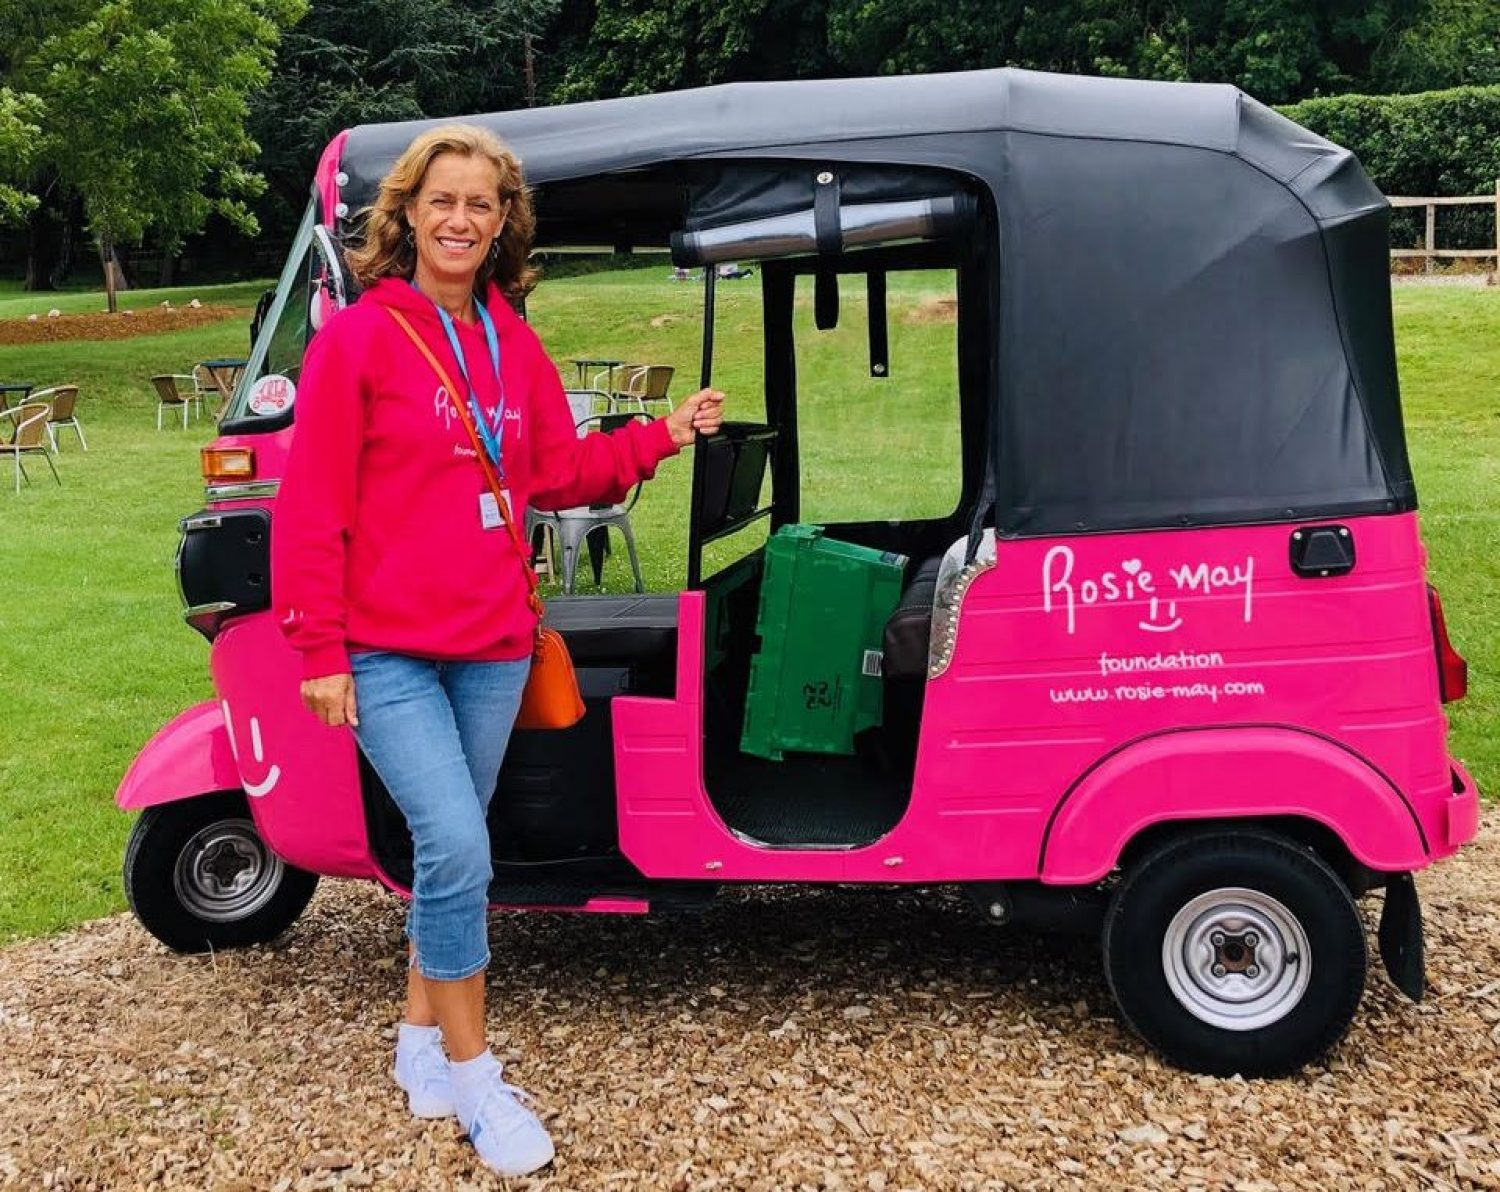 Mary Storrie pictured with her pink tuk tuk, Rosie